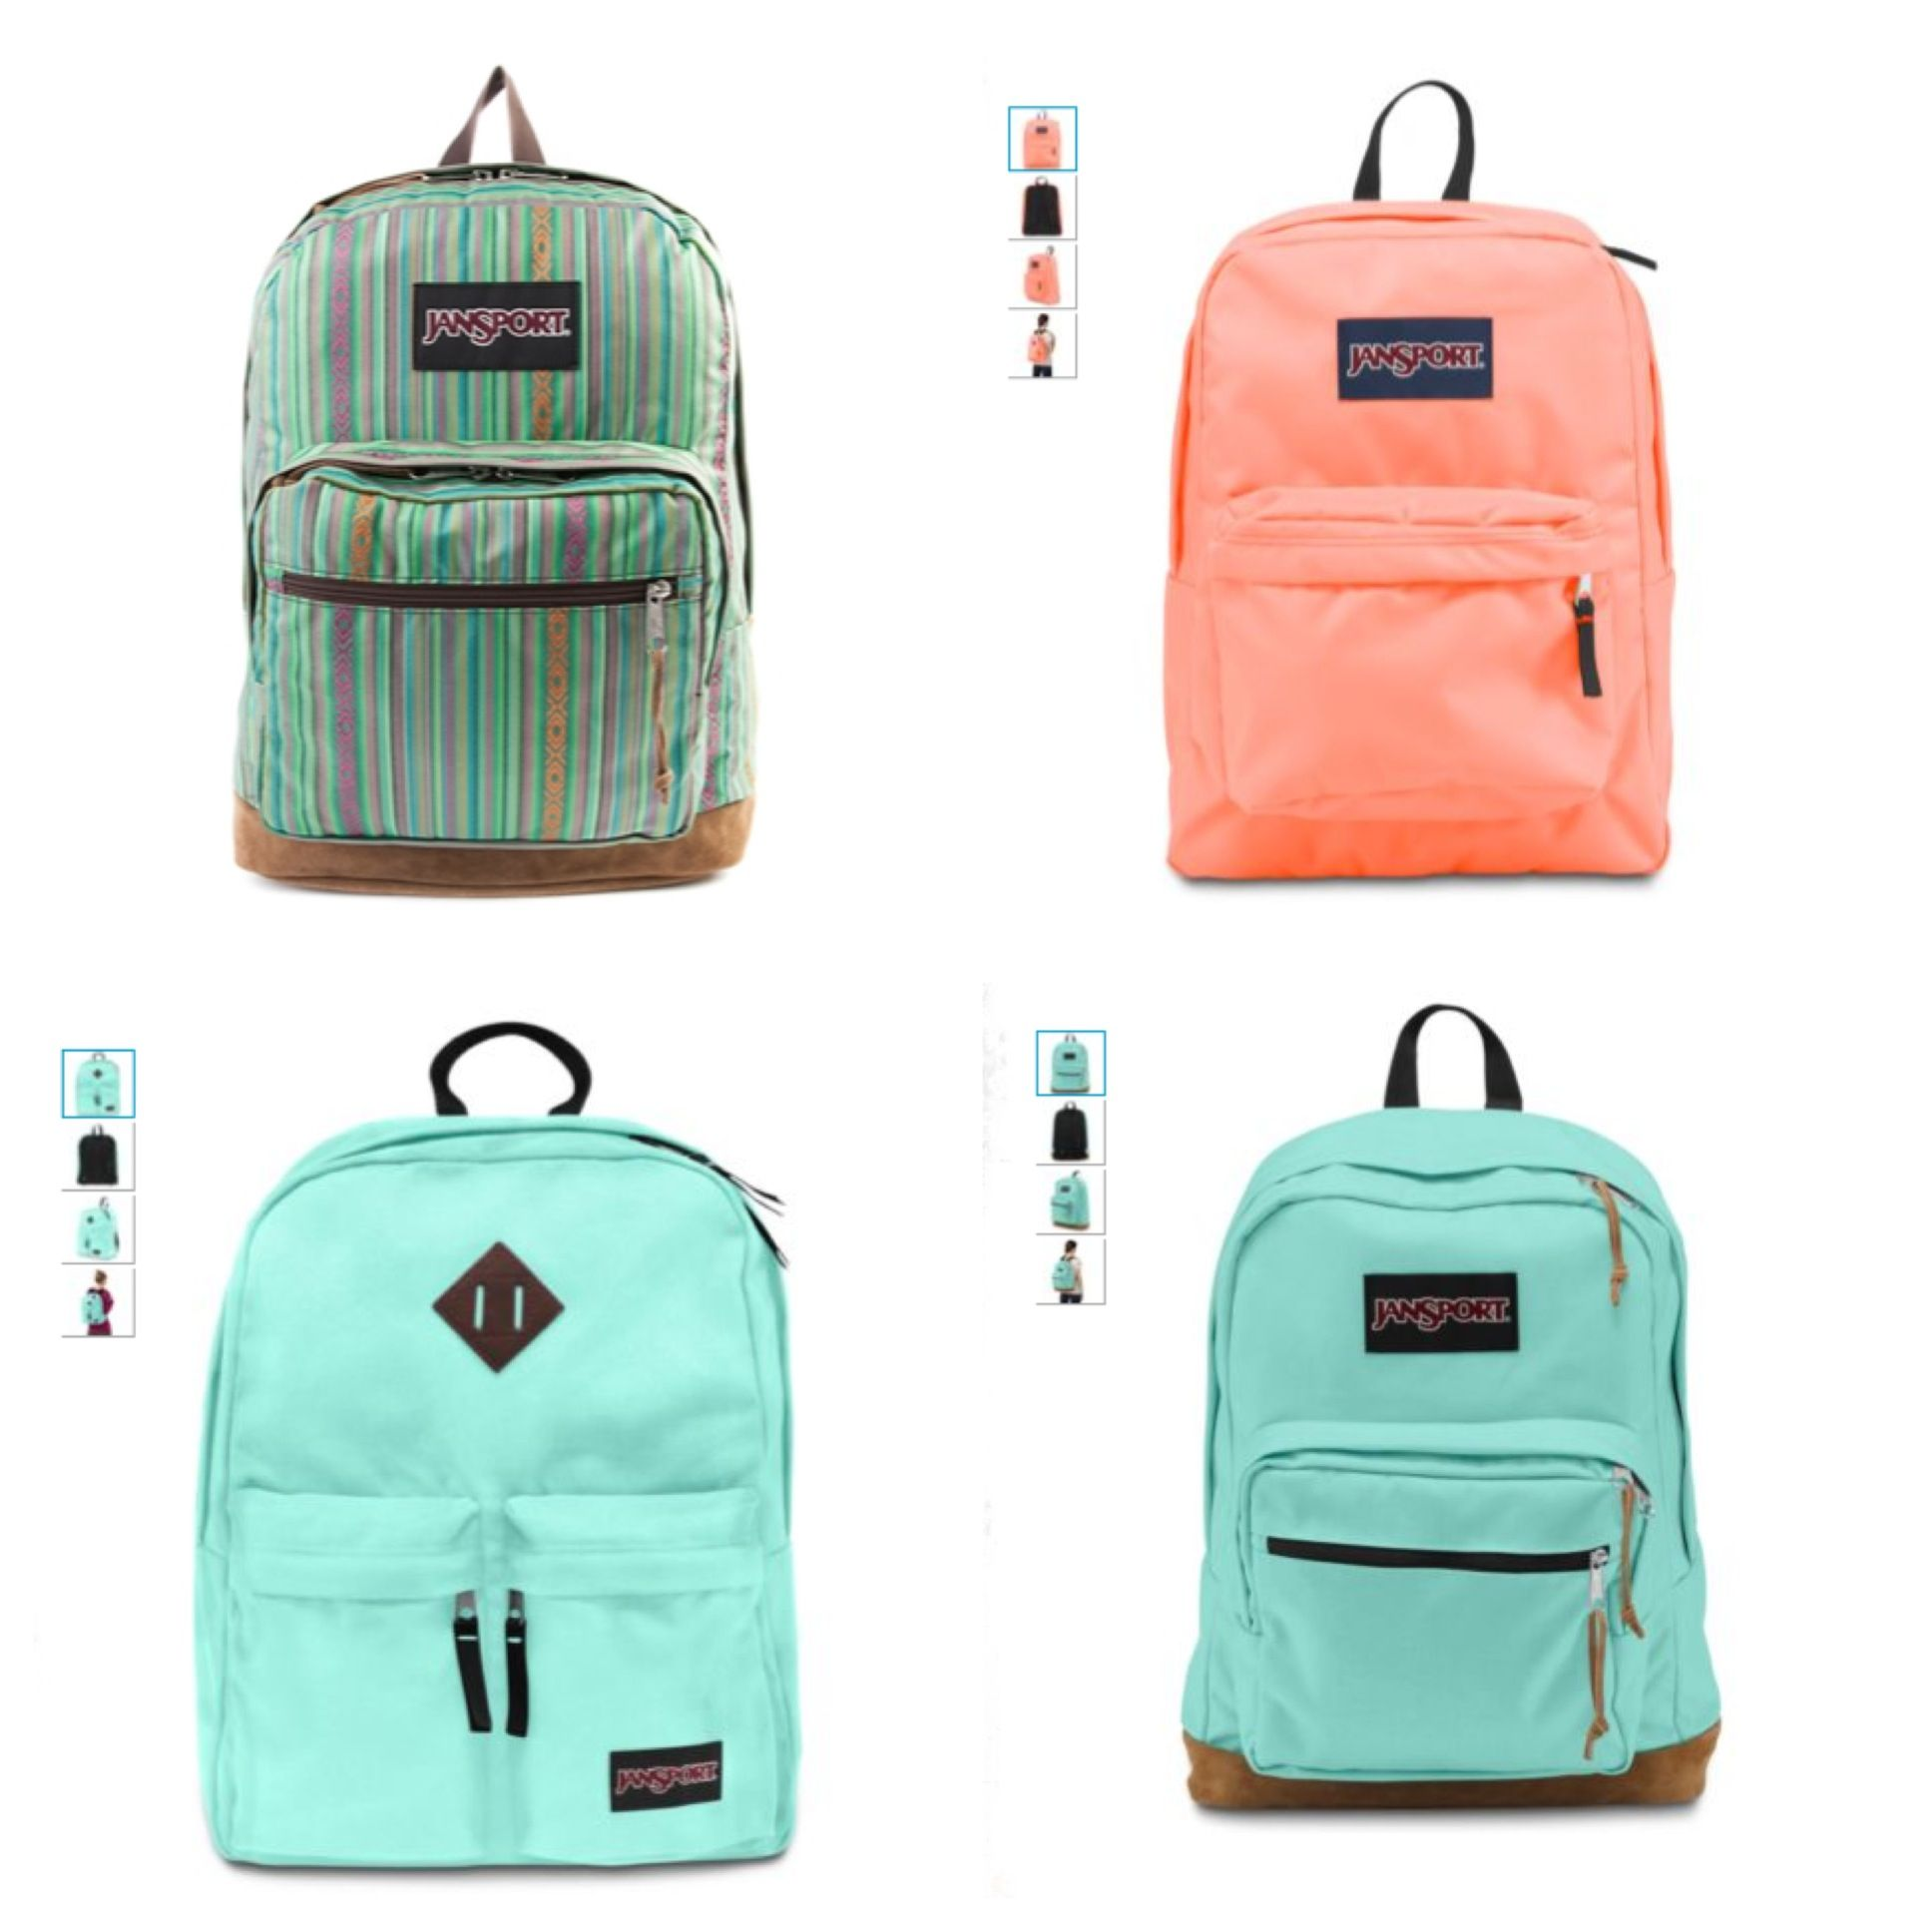 The Best Backpacks For High School Students - CEAGESP 717a2f246368